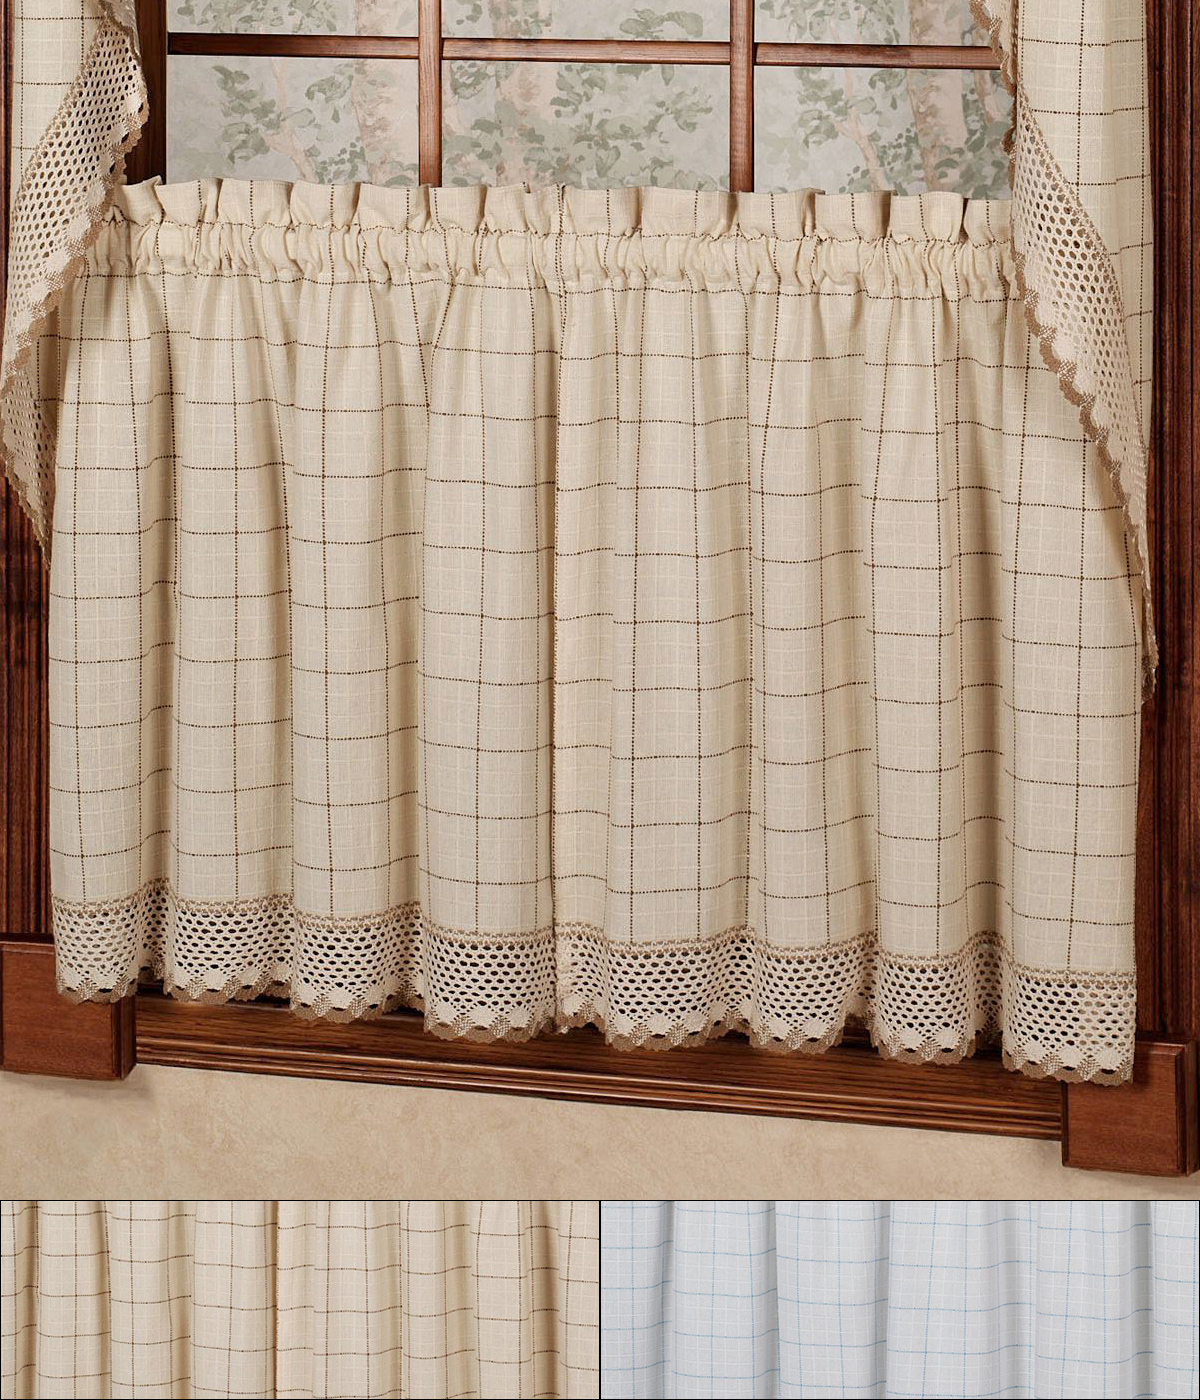 "Fashionable Details About Adirondack Cotton Kitchen Window Curtains – 24"" X 60"" Tier Pair Intended For Cotton Classic Toast Window Pane Pattern And Crotchet Trim Tiers (View 3 of 20)"